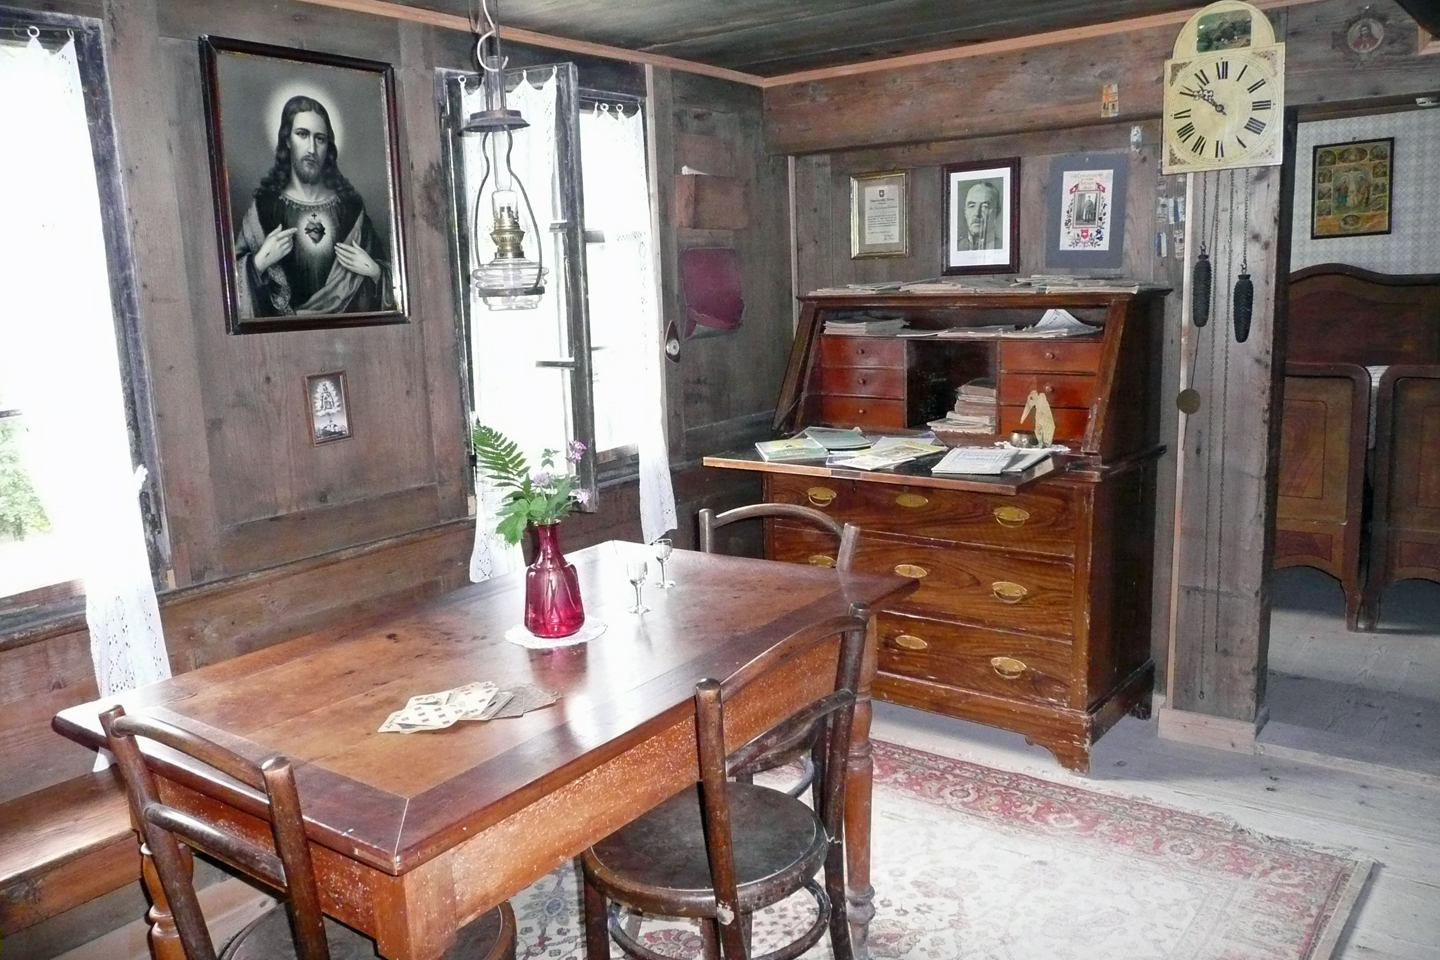 The interior of a historic farmers house at the Ballenberg open air museum